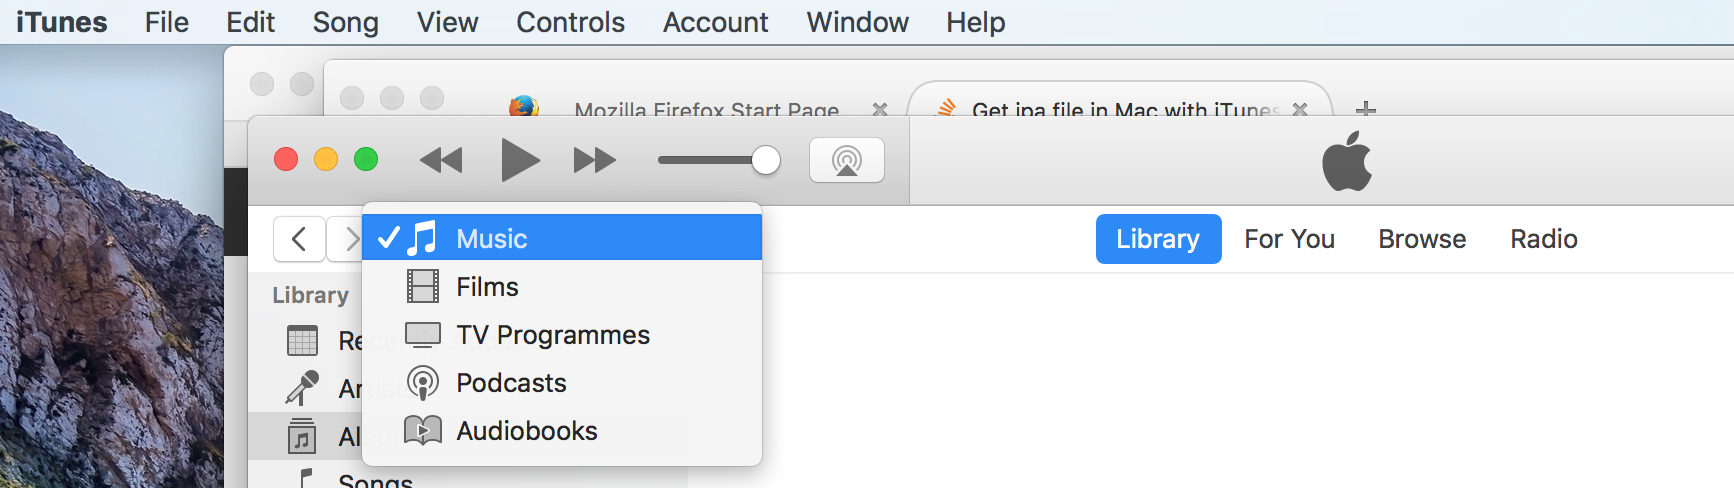 how to get to applications support folder mac